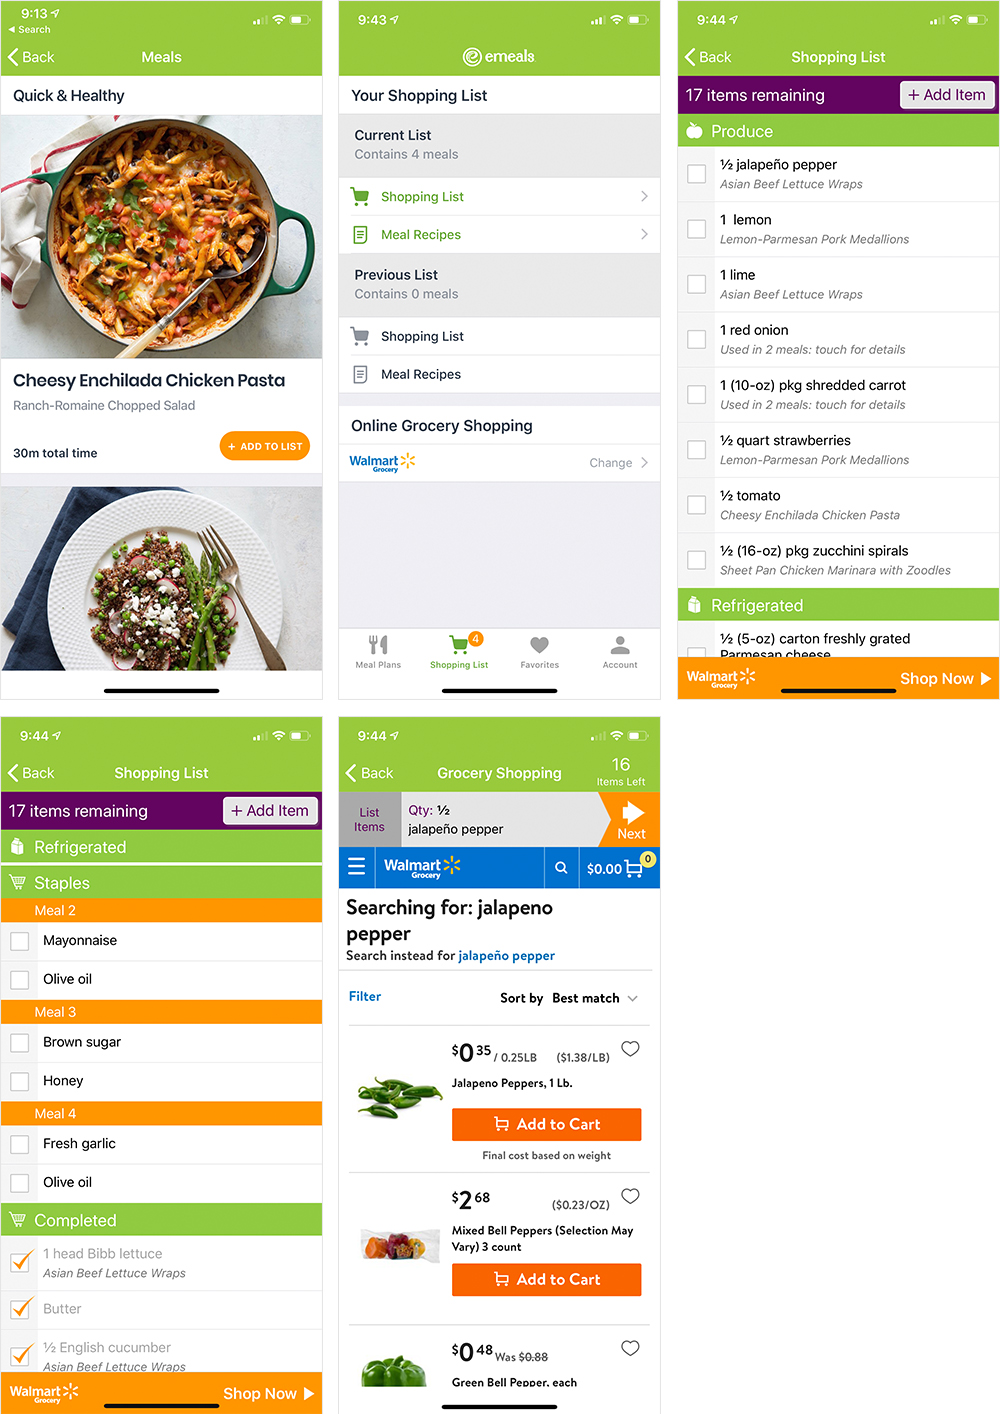 With all of the competition out there when it comes to meal planning services, it's hard to know which one to choose. That's why I'm reviewing a wide variety of meal planning services for you, and today I'm doing an emeals review.